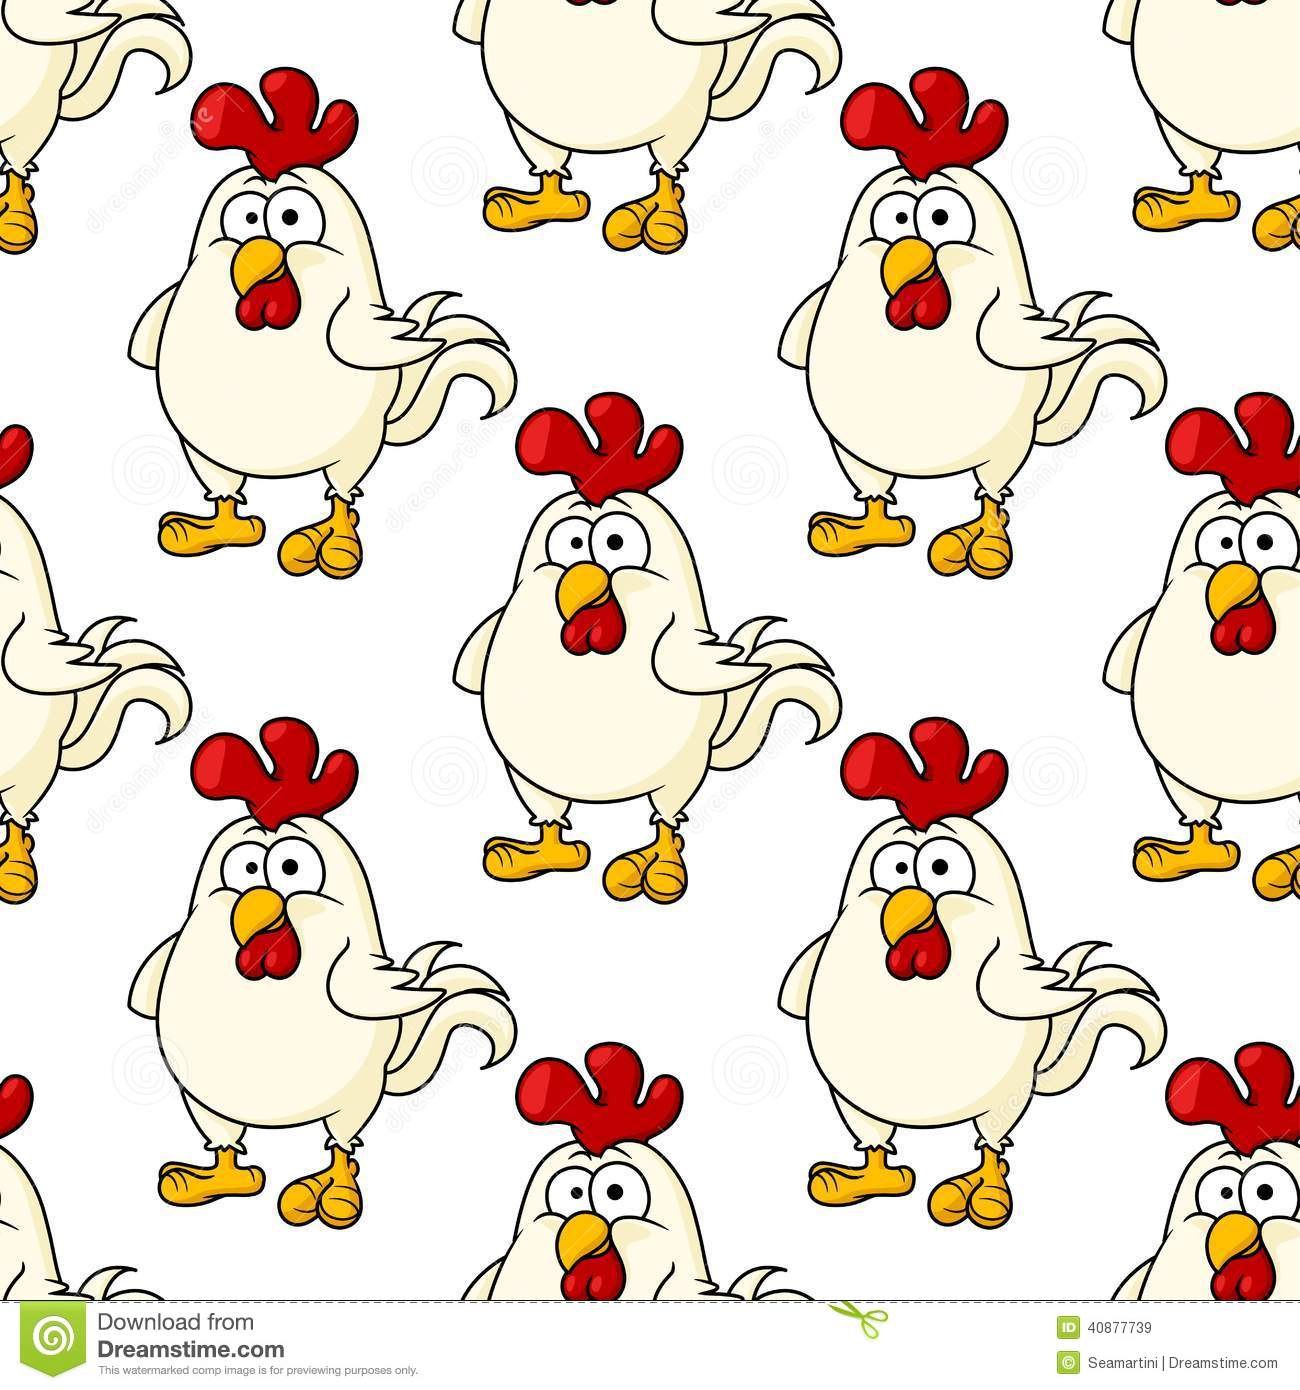 Cute little fat cartoon chicken or rooster seamless background pattern ...